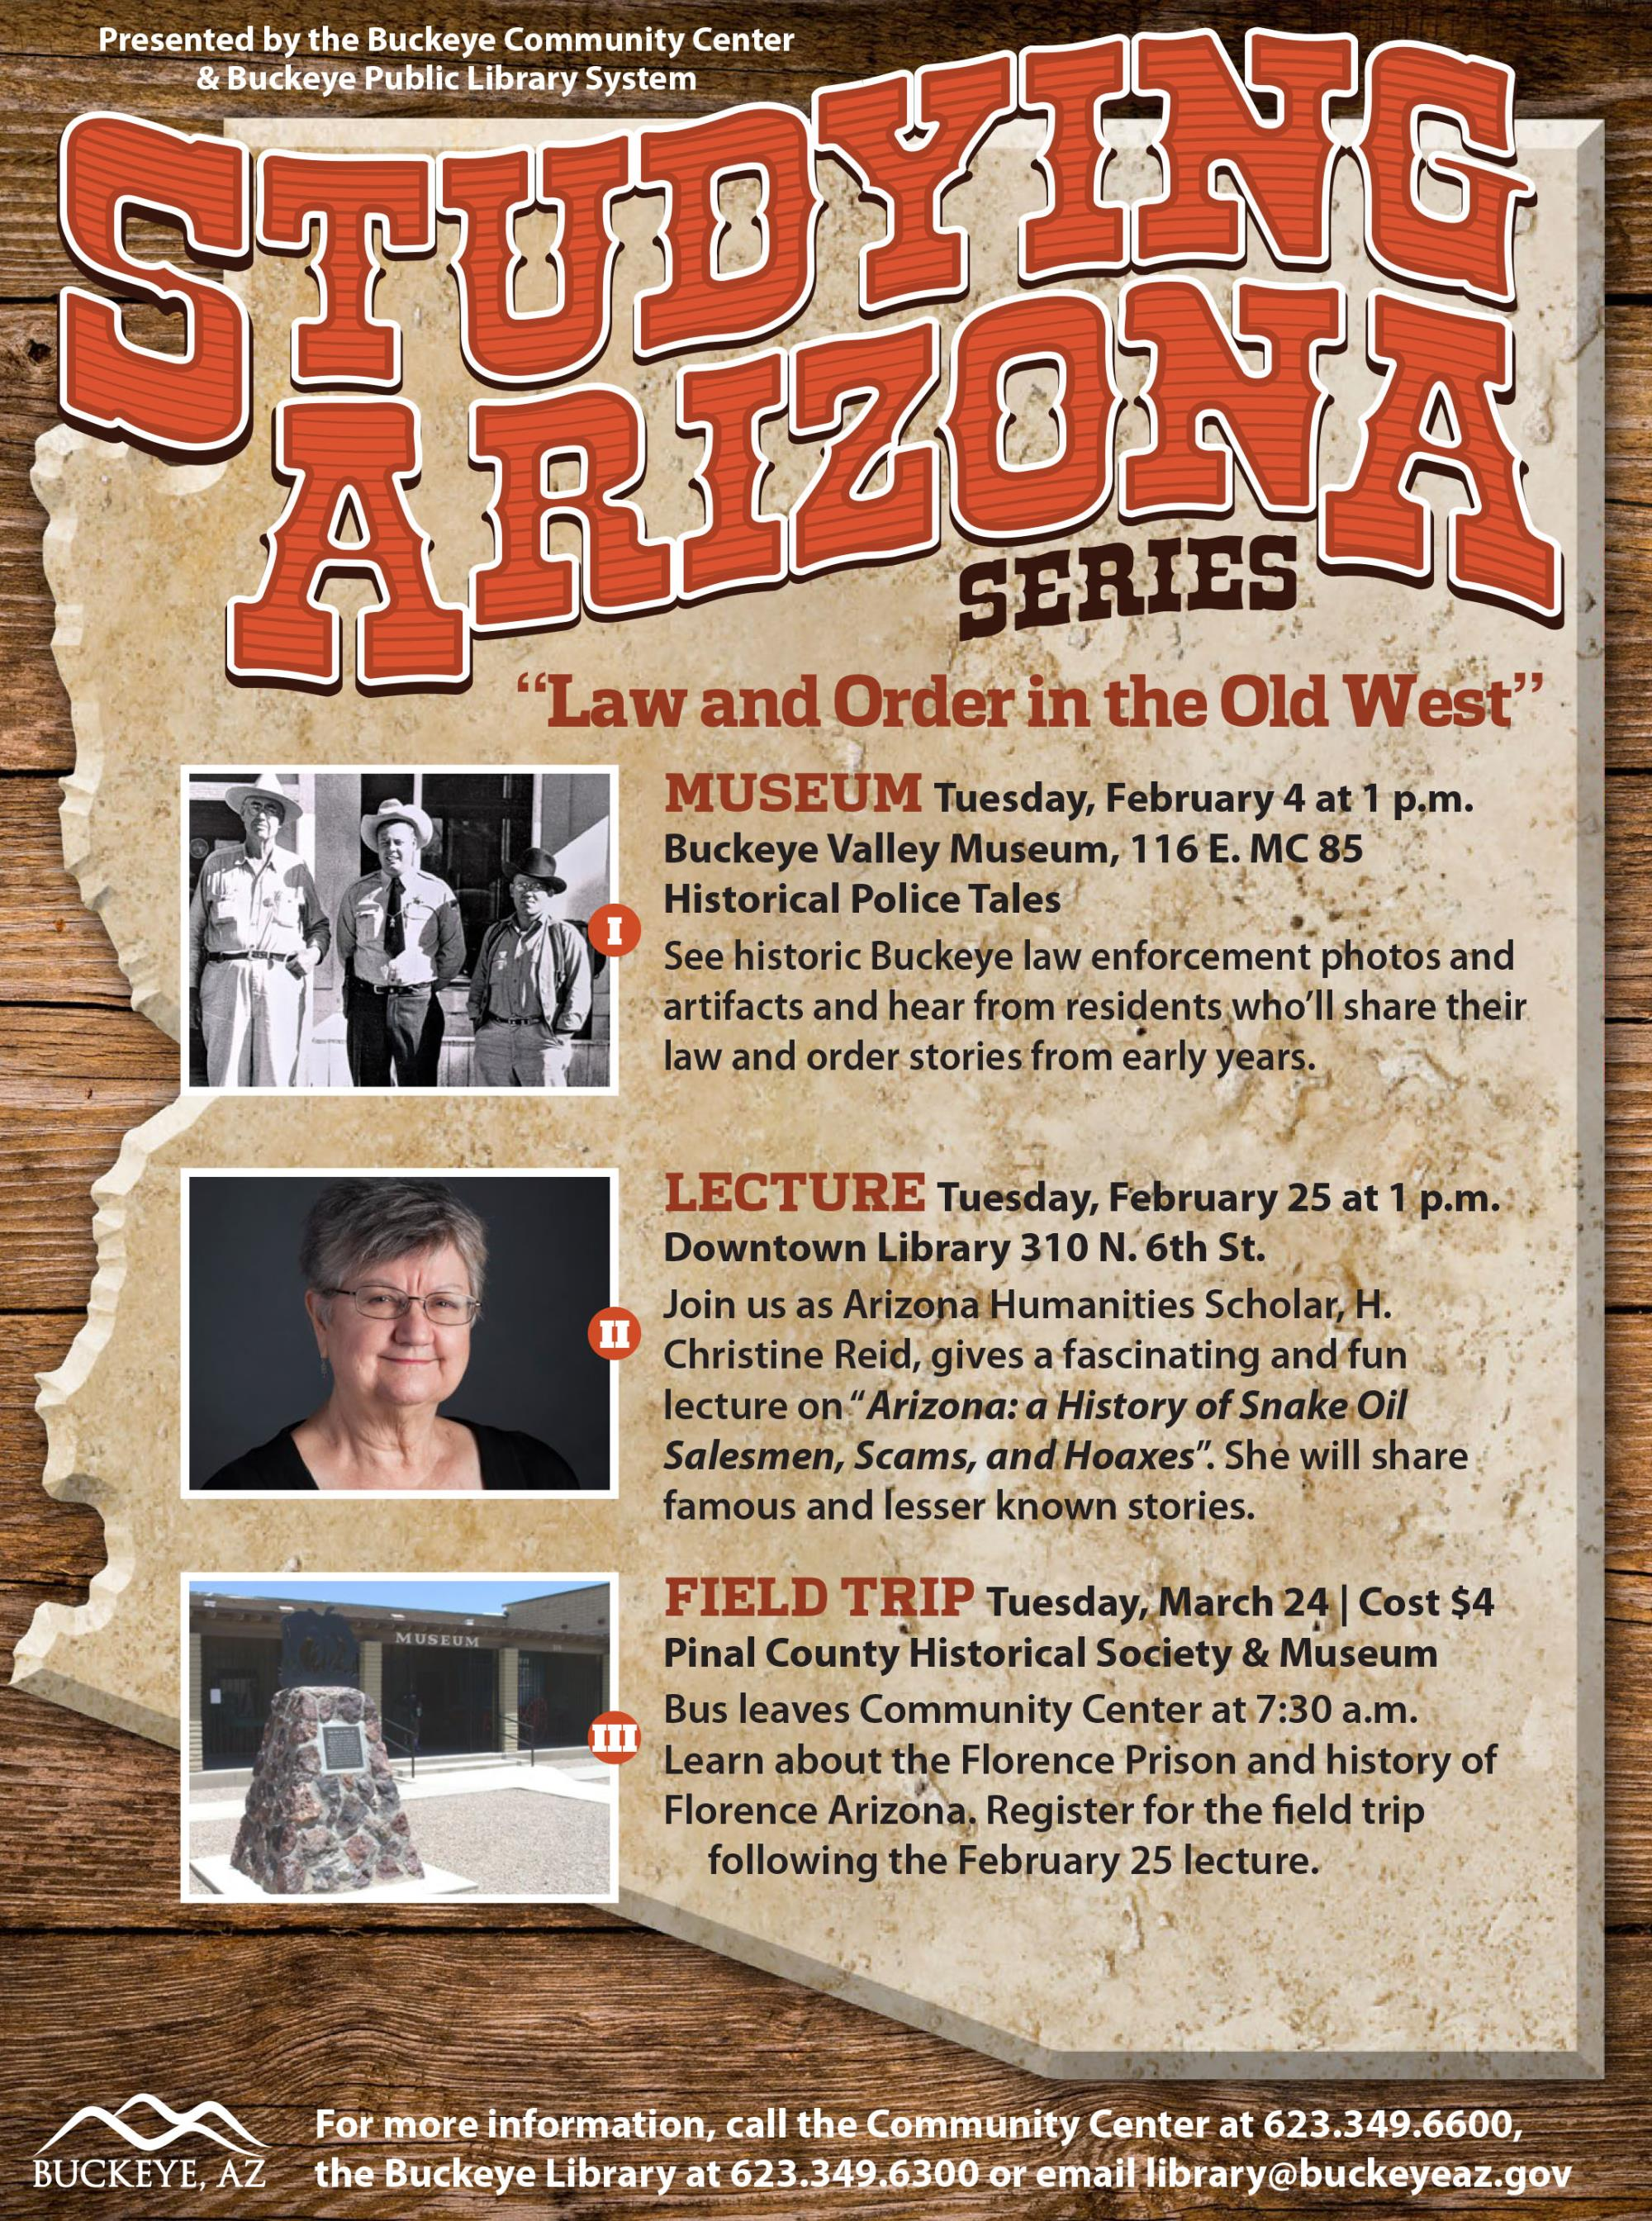 Flyer for Studying Arizona with picture of historic sheriff, featured lecturer, and the exterior of the Pinal County Historical Society and Museum